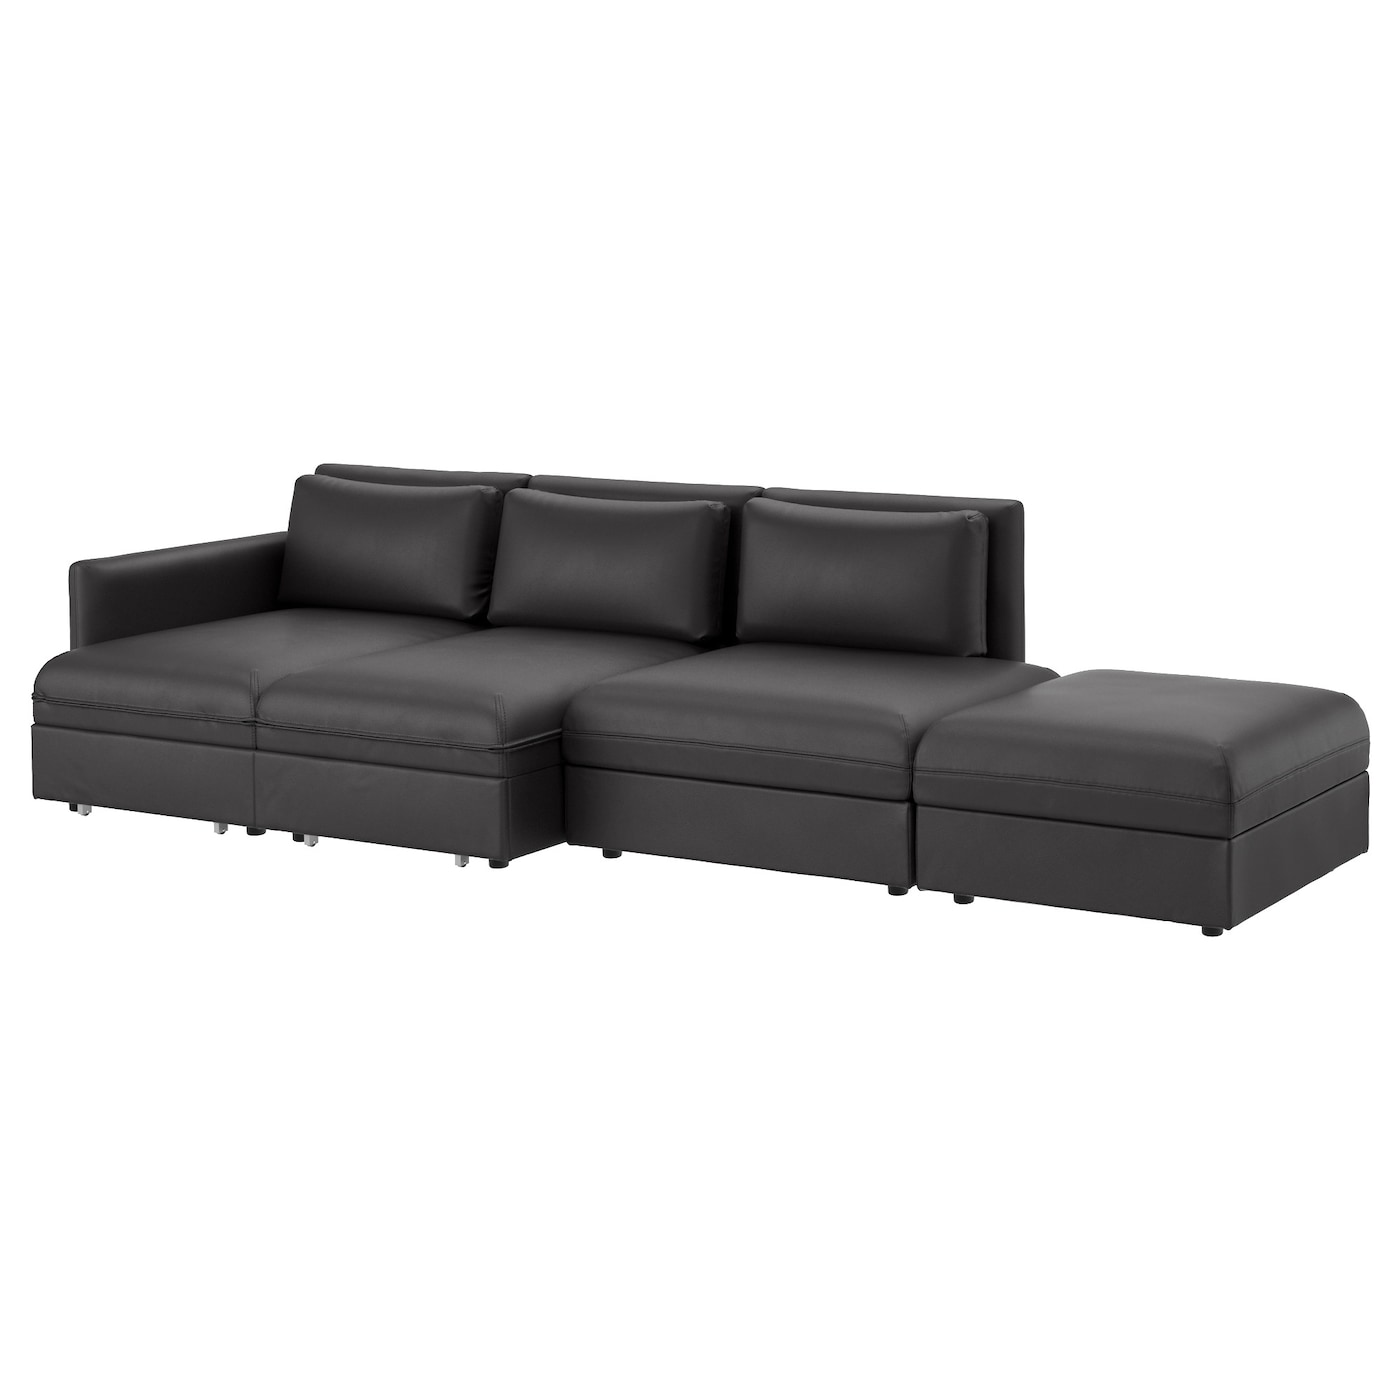 Vallentuna 4 seat sofa with bed murum black ikea for Ikea couch planer